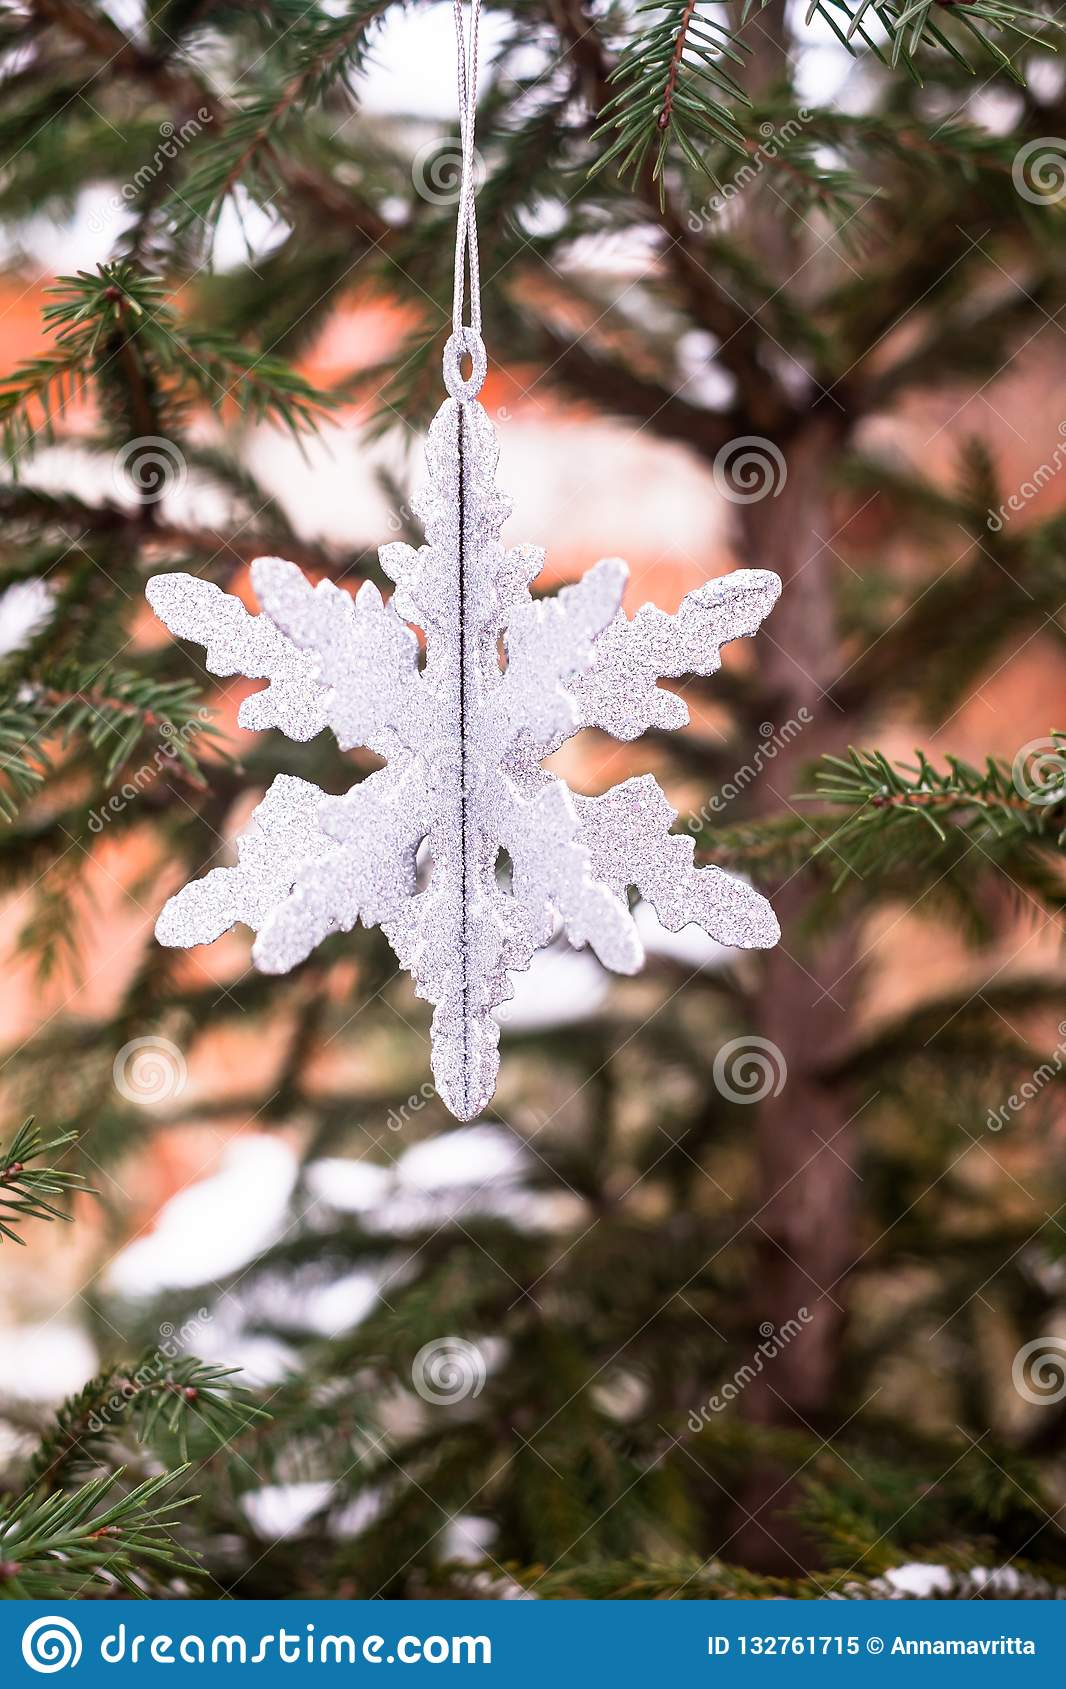 Christmas decoration with a toy in the shape of silver snowflake, selective focus. Image with copy space.